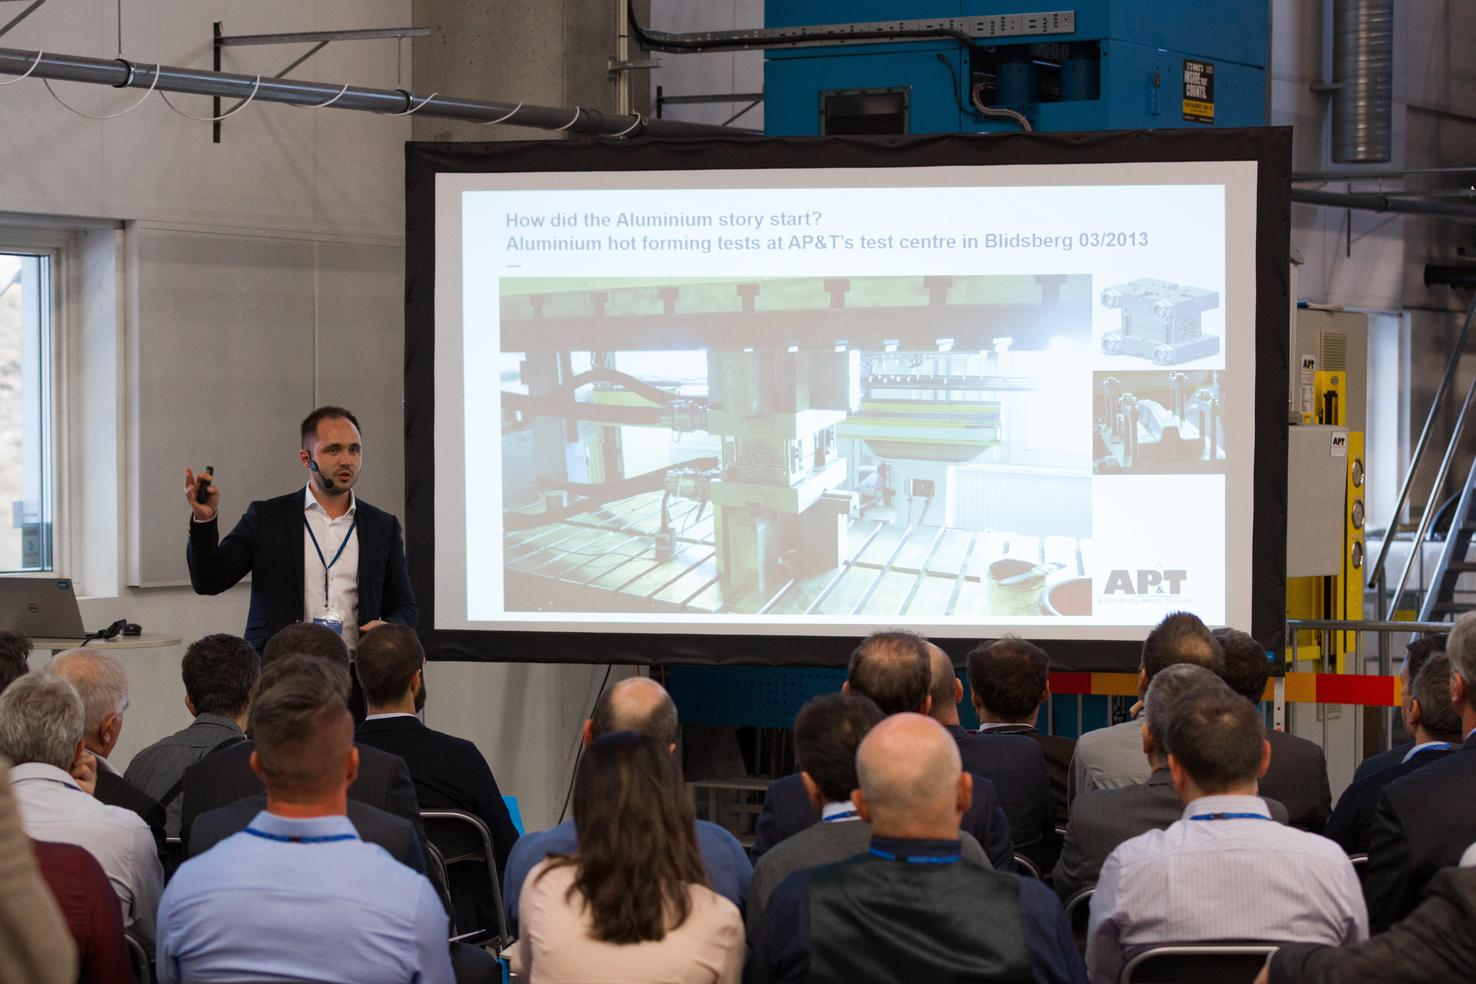 AP&T's CTO, Technology Development Christian Koroschetz presented the opportunities enabled by AP&T's process technology for forming high-strength aluminum.